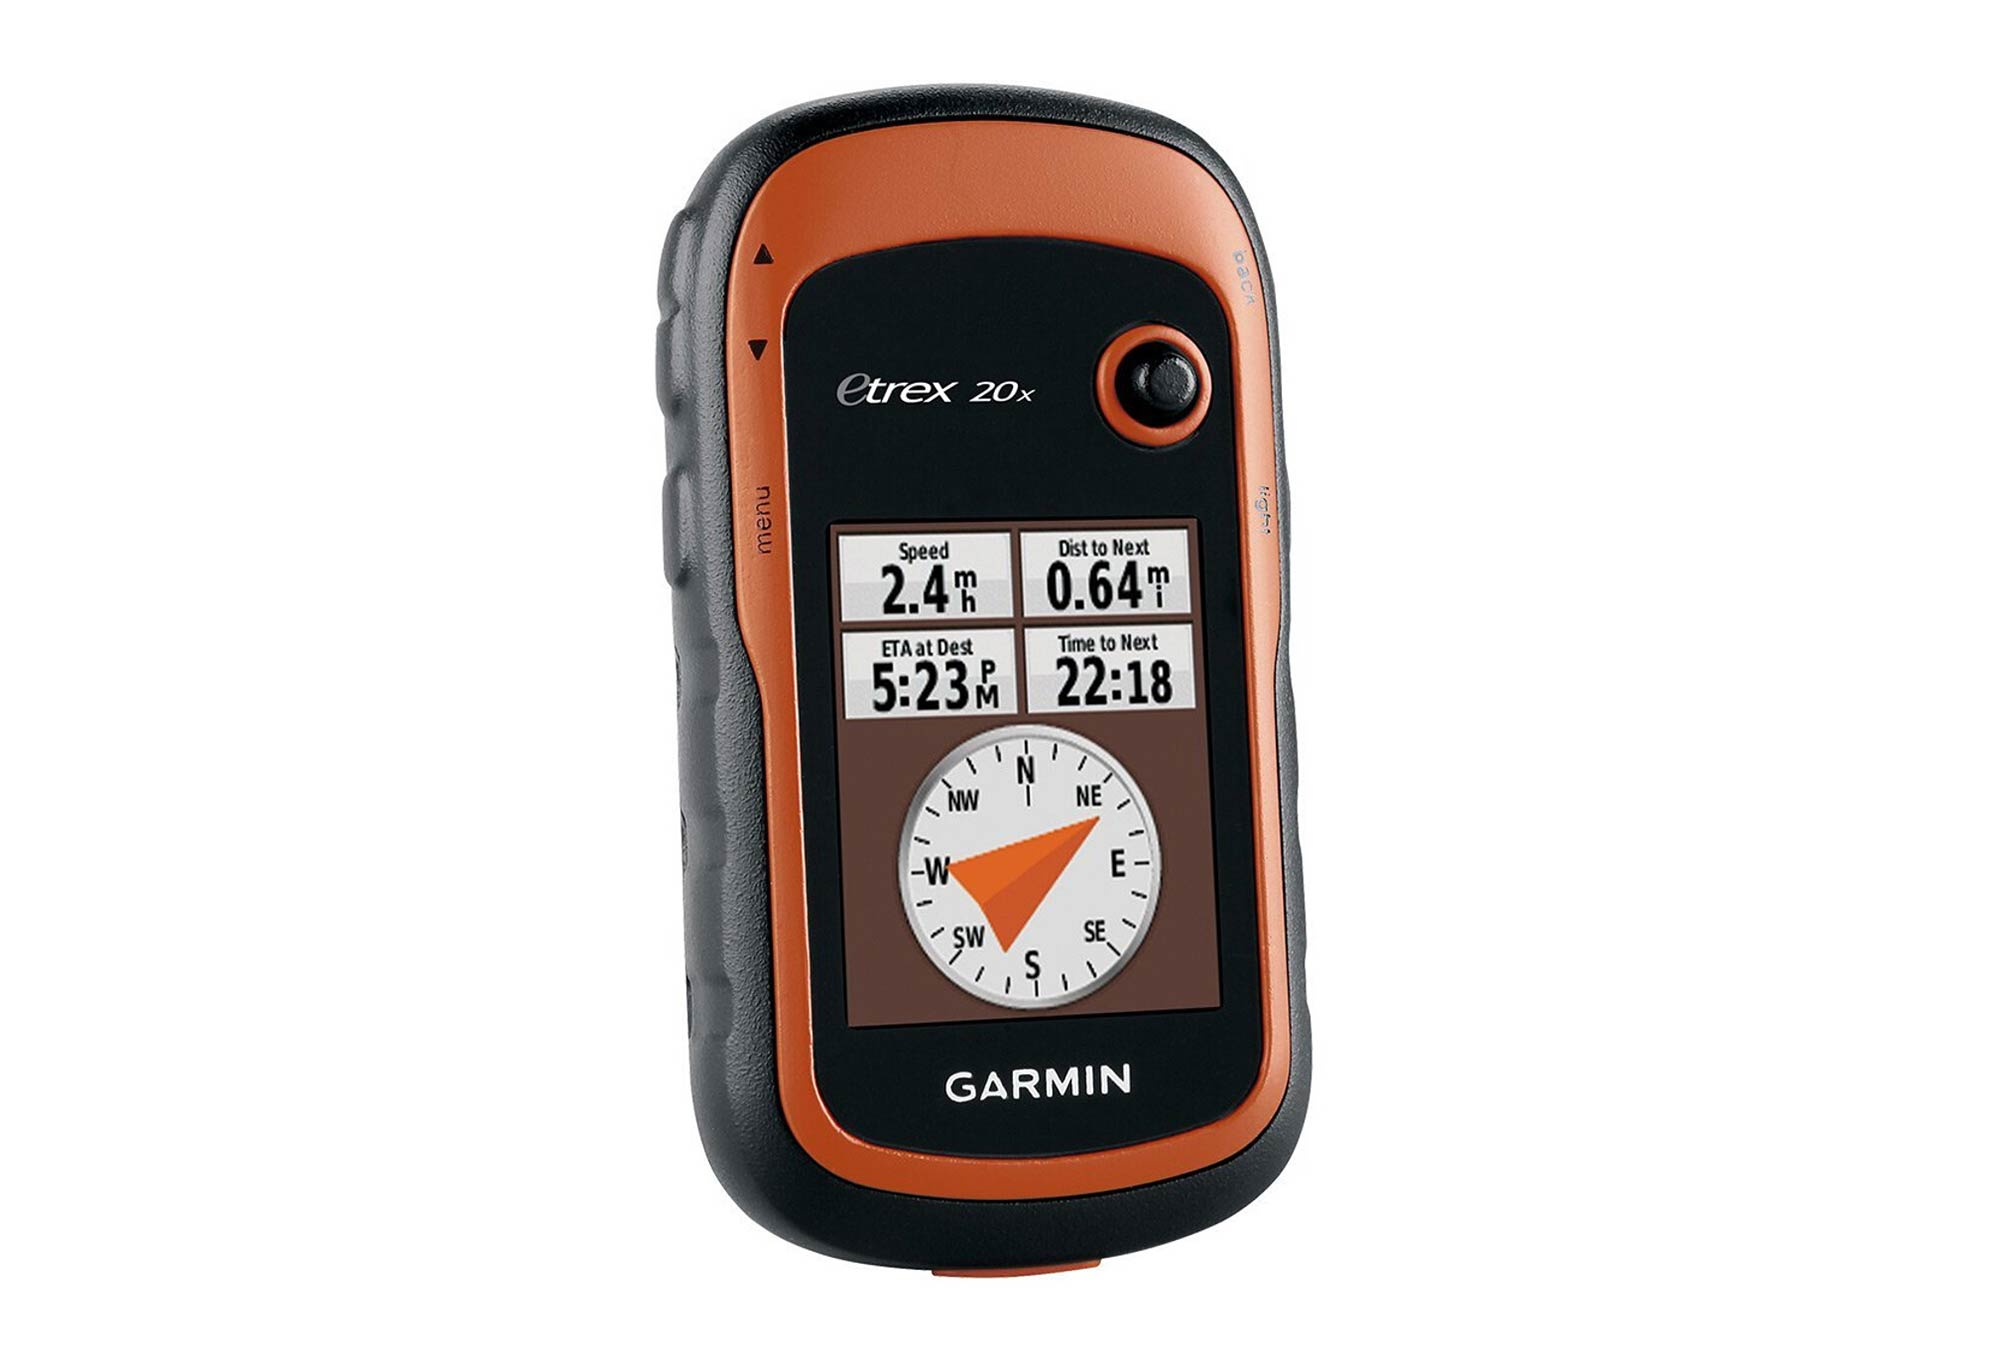 compteur gps garmin etrex 20x avec cartographie europe de l ouest. Black Bedroom Furniture Sets. Home Design Ideas